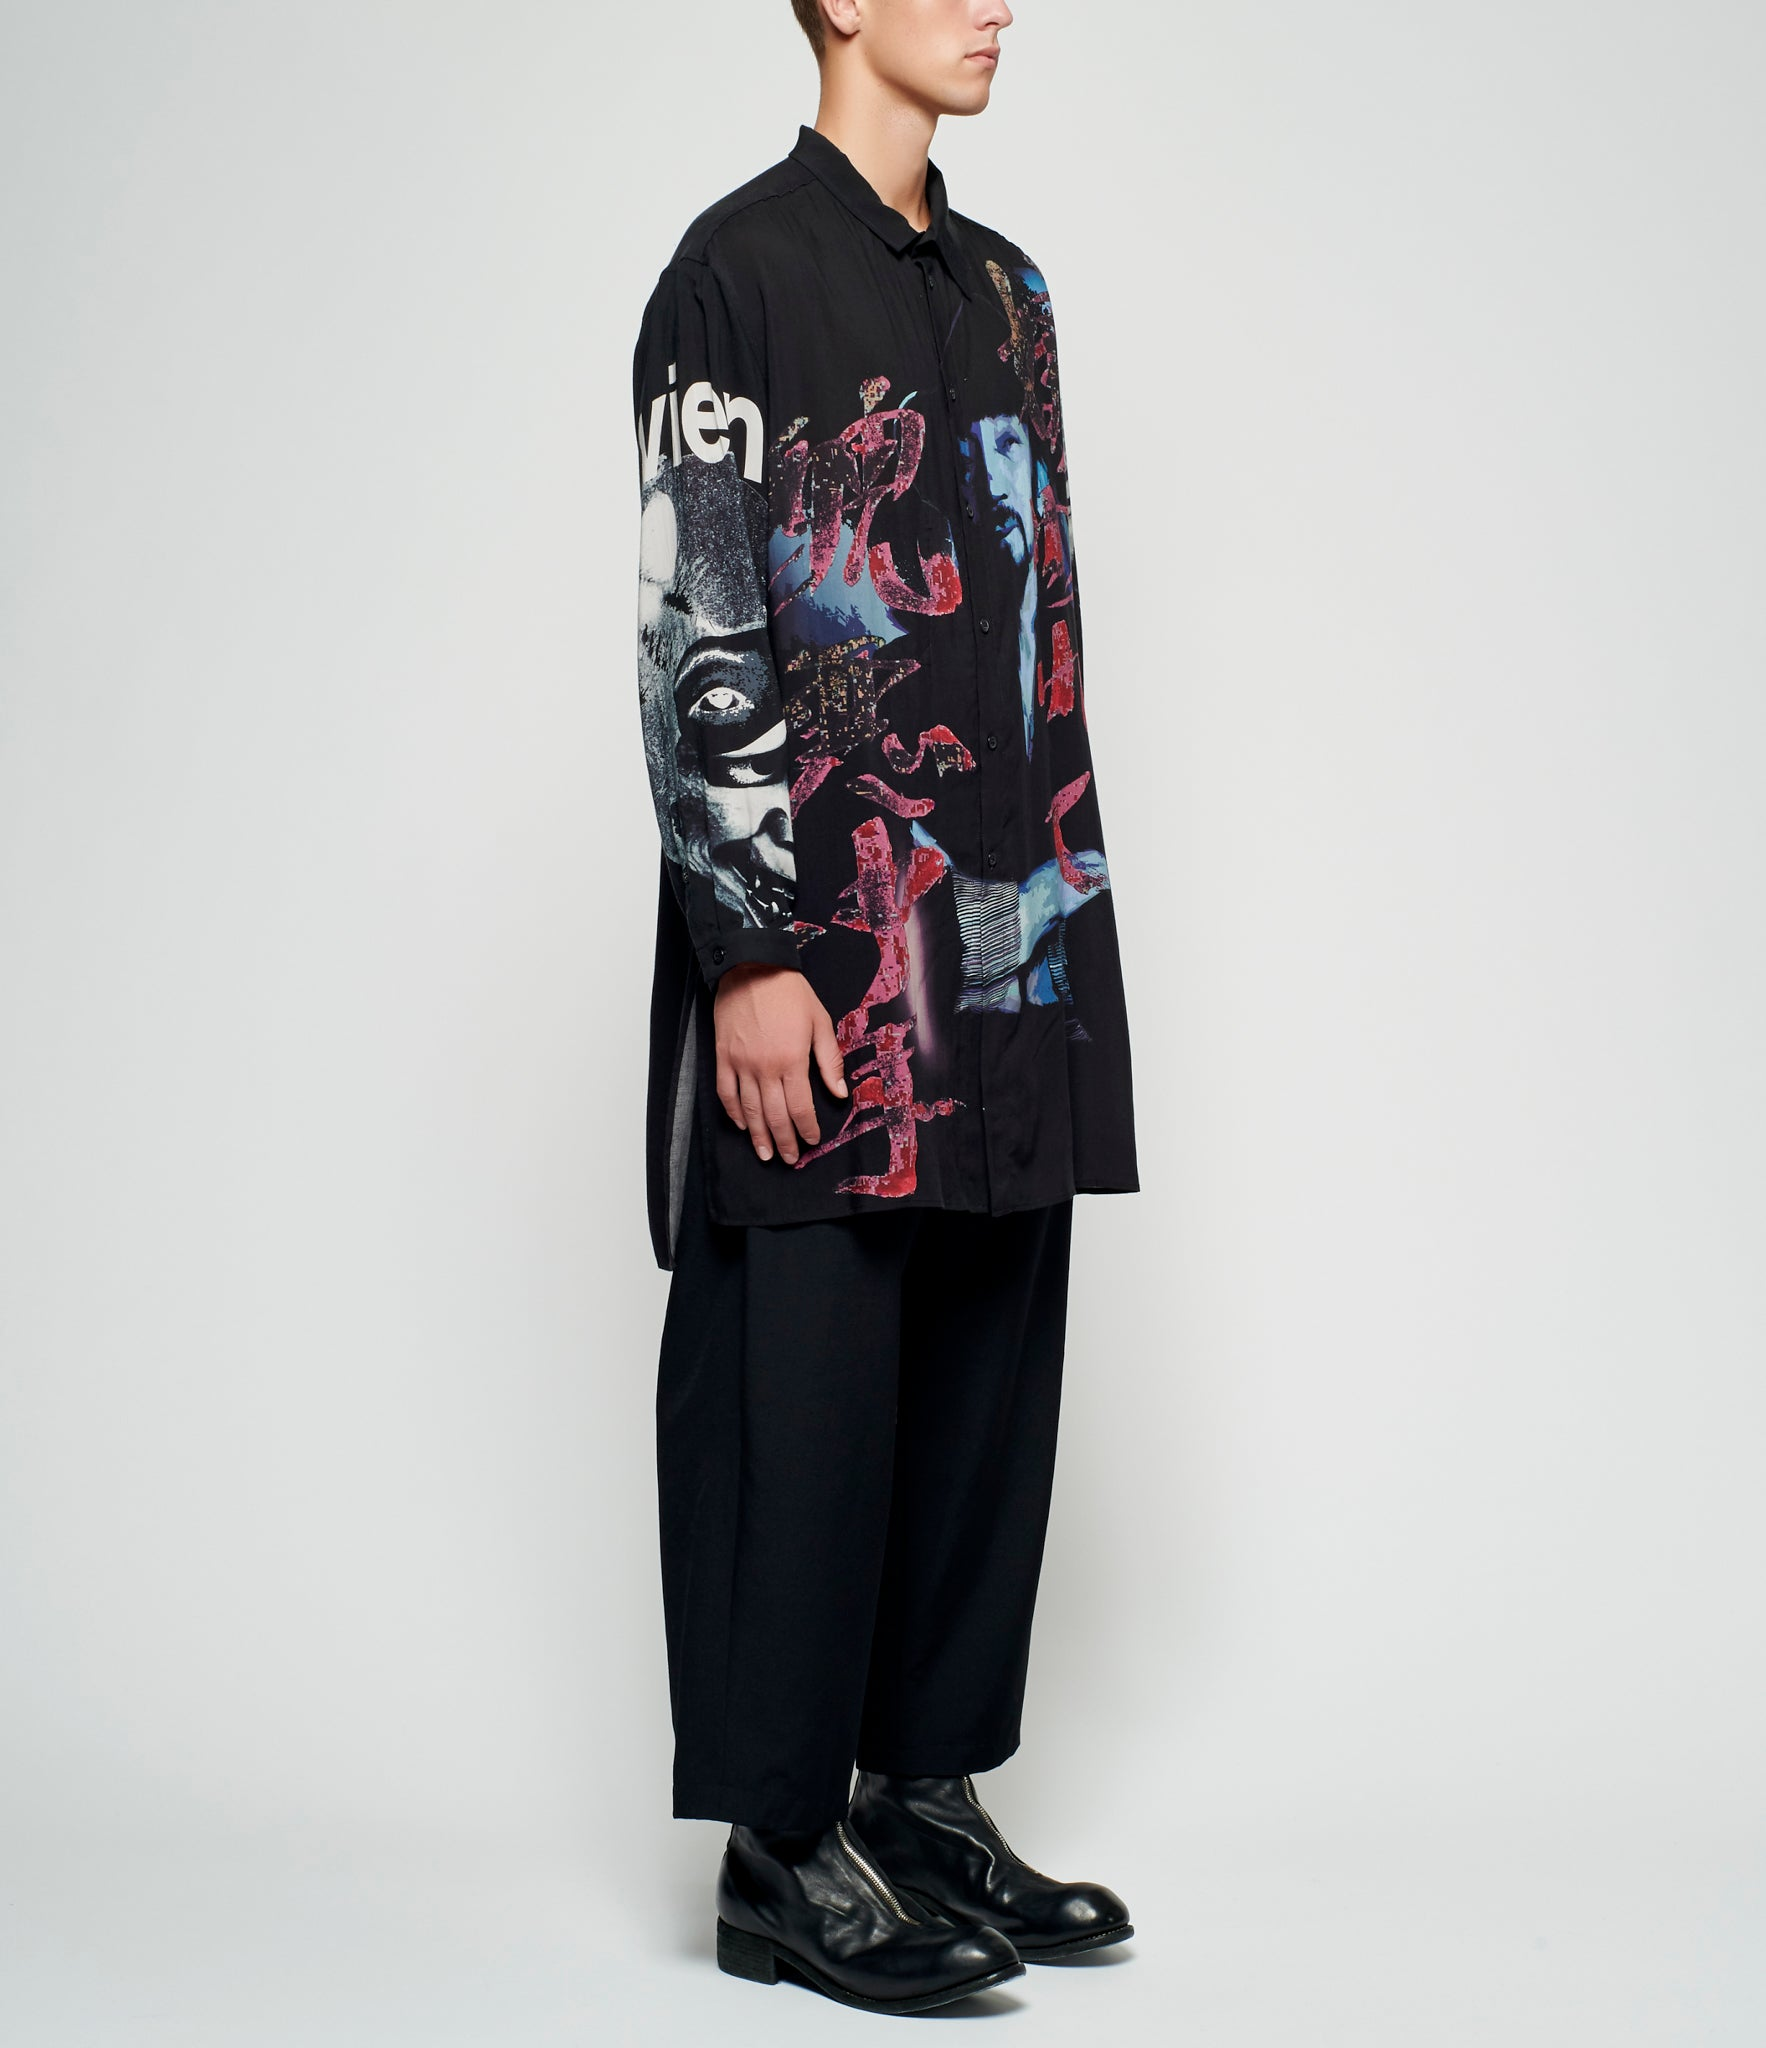 Yohji Yamamoto Asymmetric Collar Black Scandal Graphic Print Long Shirt